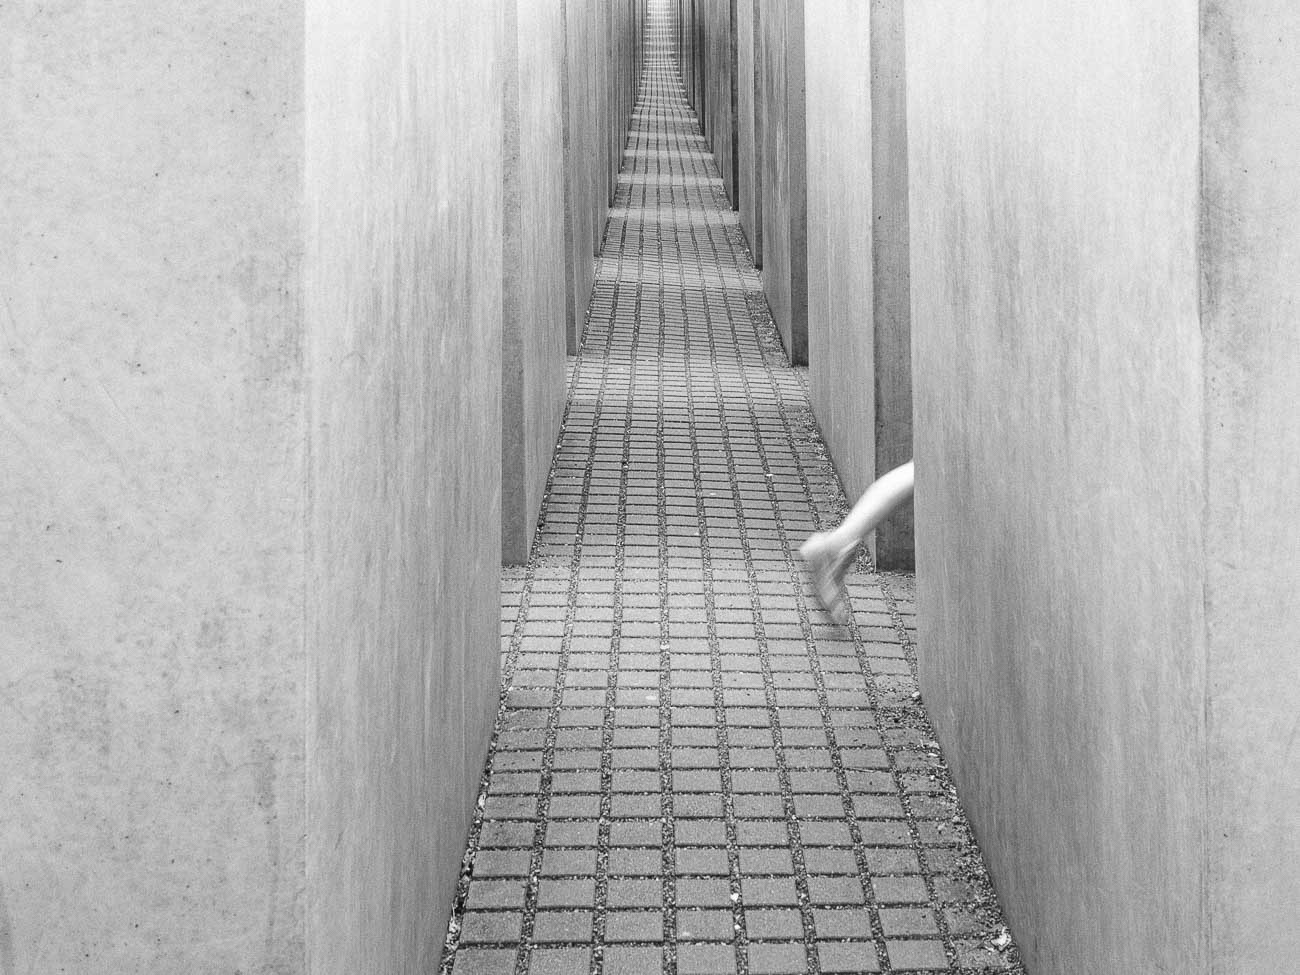 holocaust memorial berlin Martin U Waltz